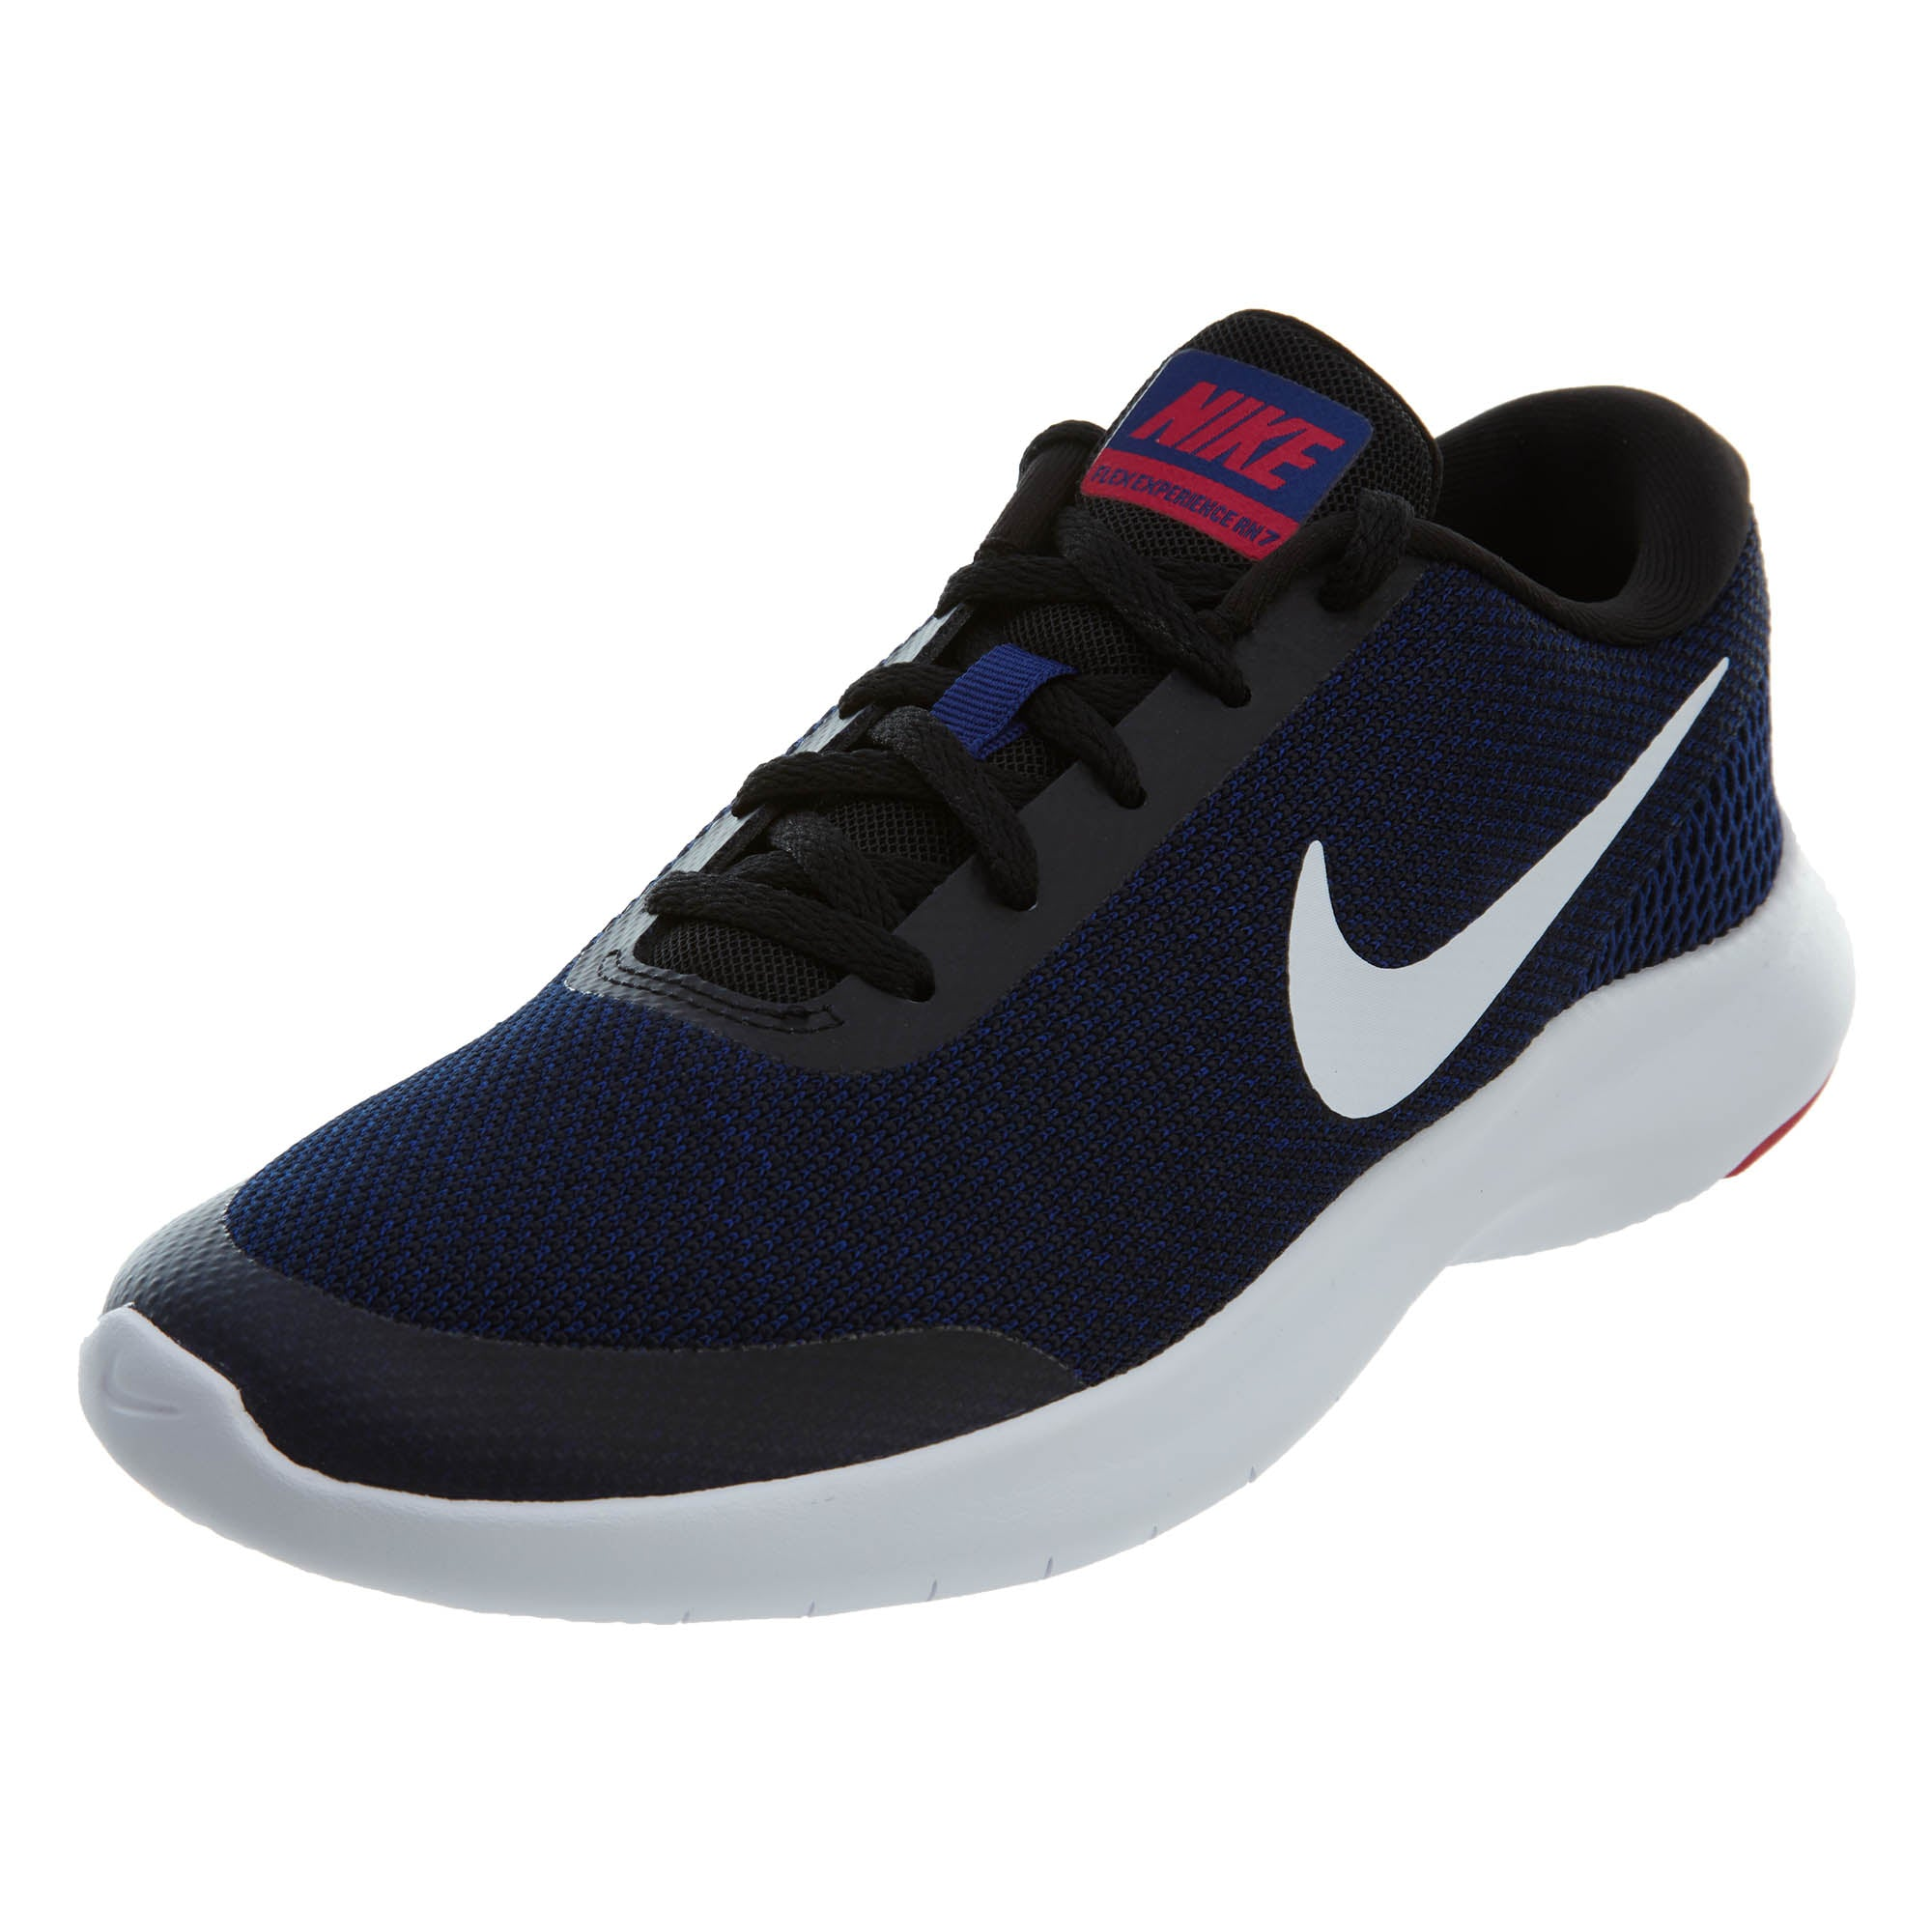 ccc2499a2538 Nike Flex Experience Rn 7 Womens Style   908996 – talkmoney730